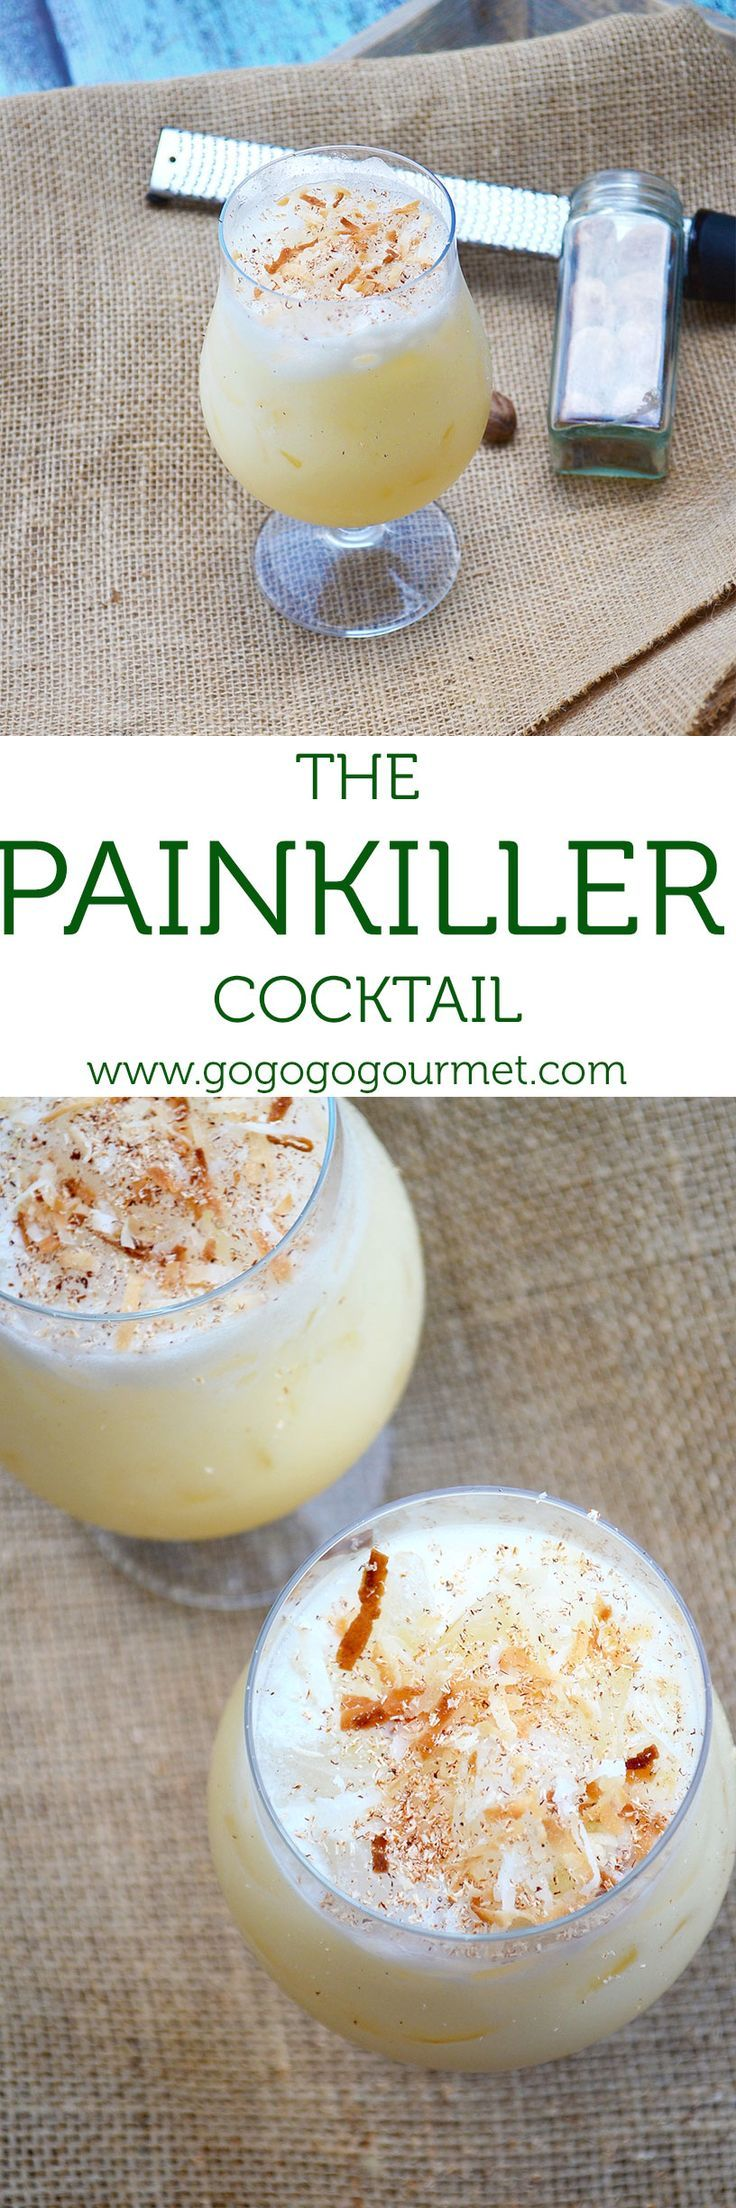 This Painkiller Cocktail is totally out of this world- rum, coconut, orange and pineapple form a little taste of the tropics.